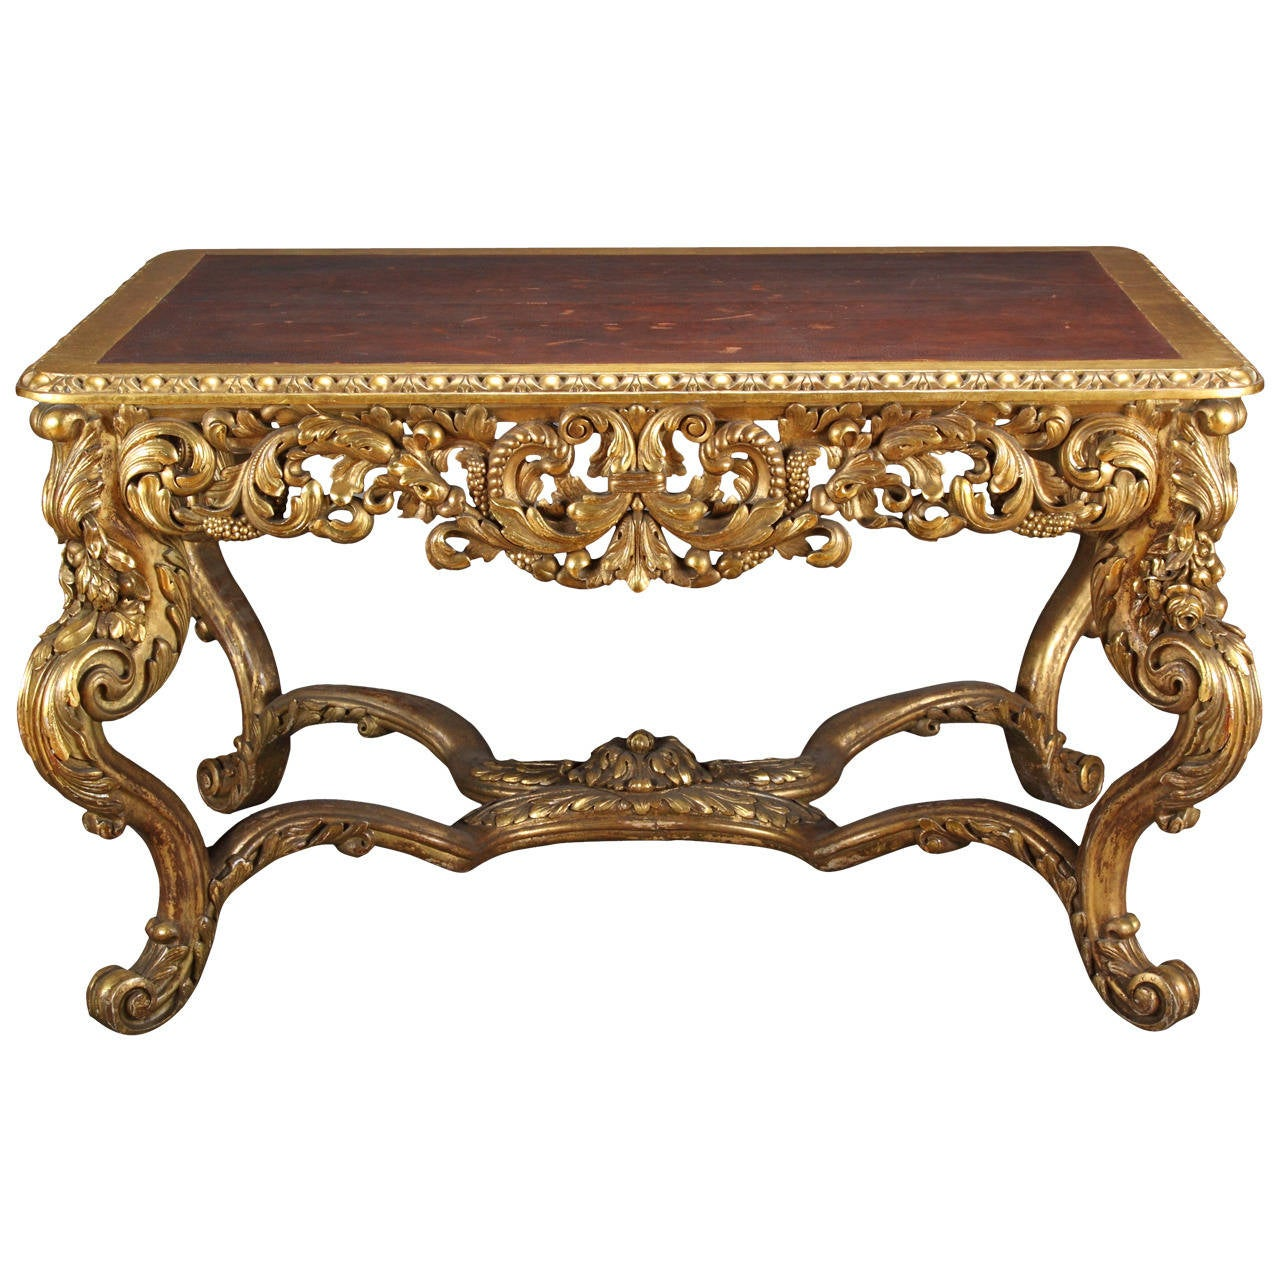 A Large Antique Italian Carved Gilt Wood Rococo Style Rectangular Center  Table 1